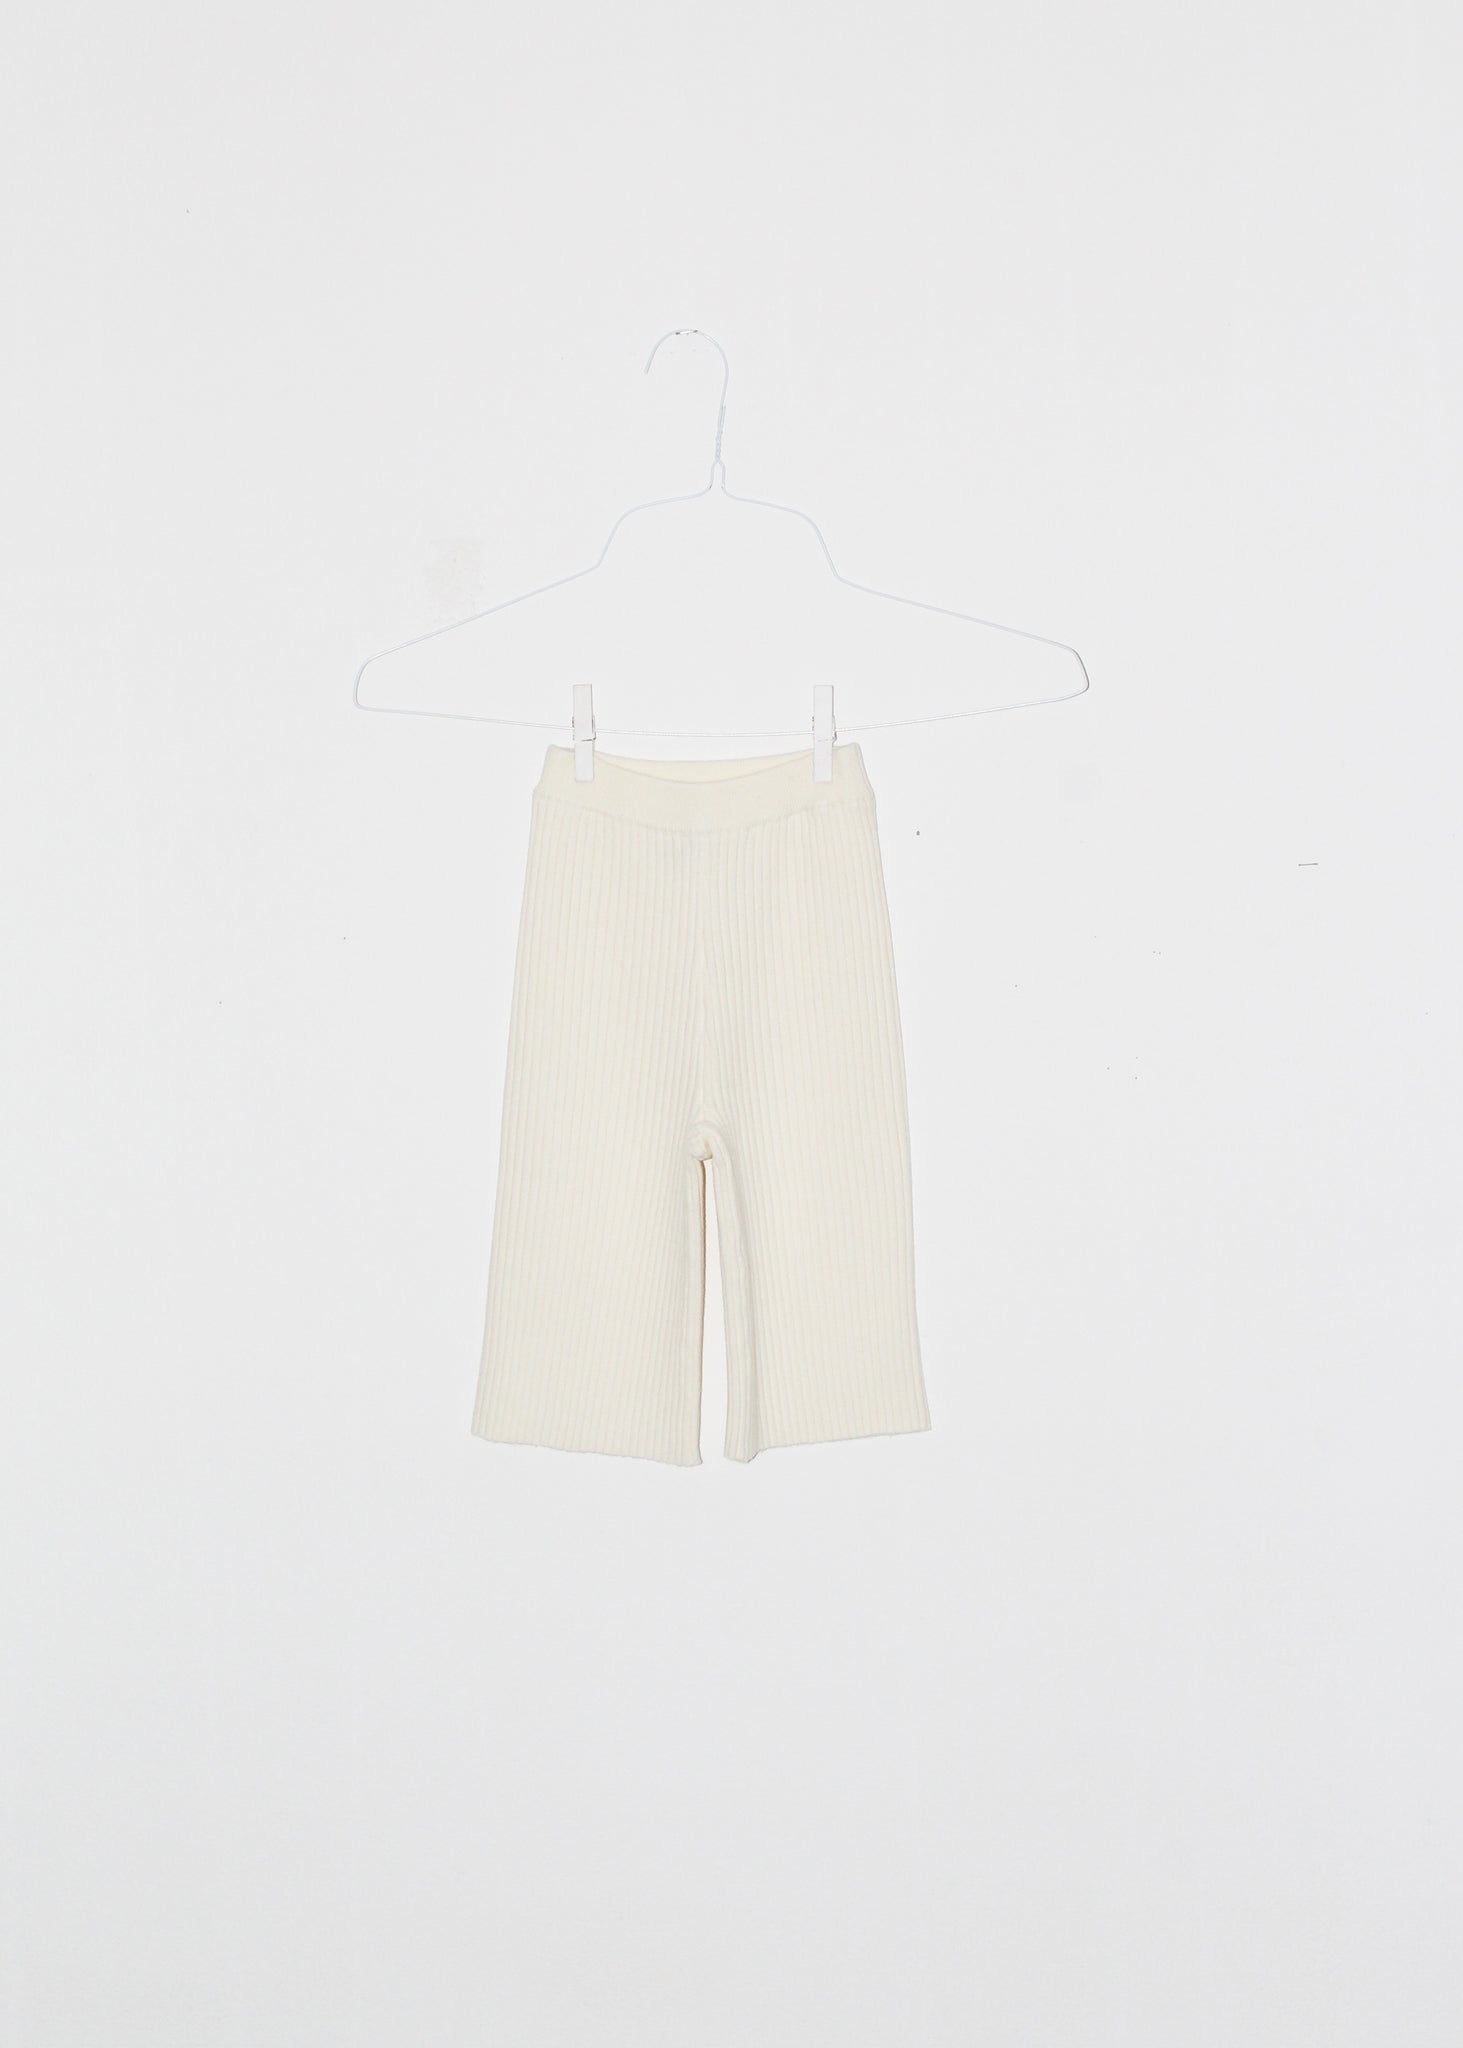 NONNA Bike Short in Ivory